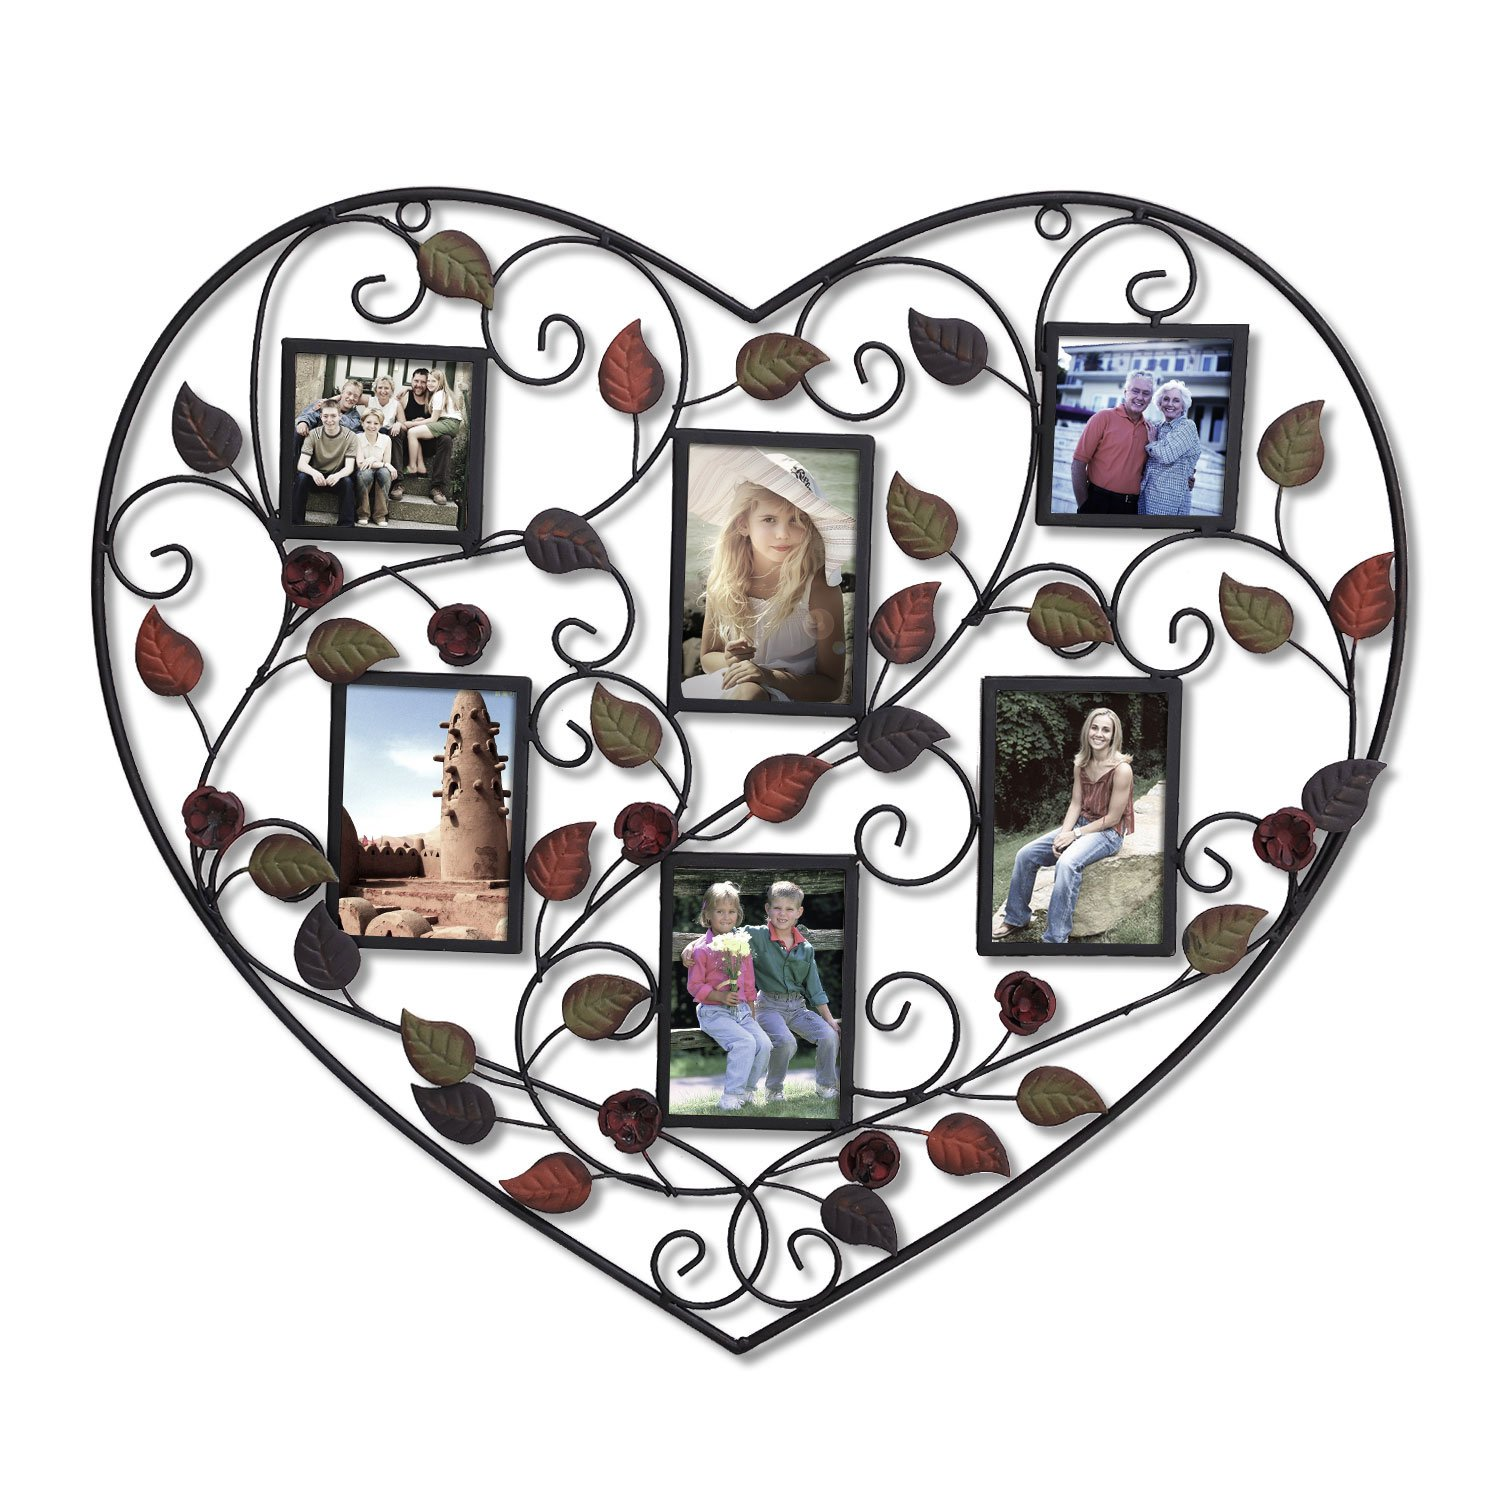 Adeco 6-Opening Decorative Bronze Iorn Metal Heart Shape Wall Hanging Collage Picture Photo Frame, 3.5x5'' and 3.5x3.5''